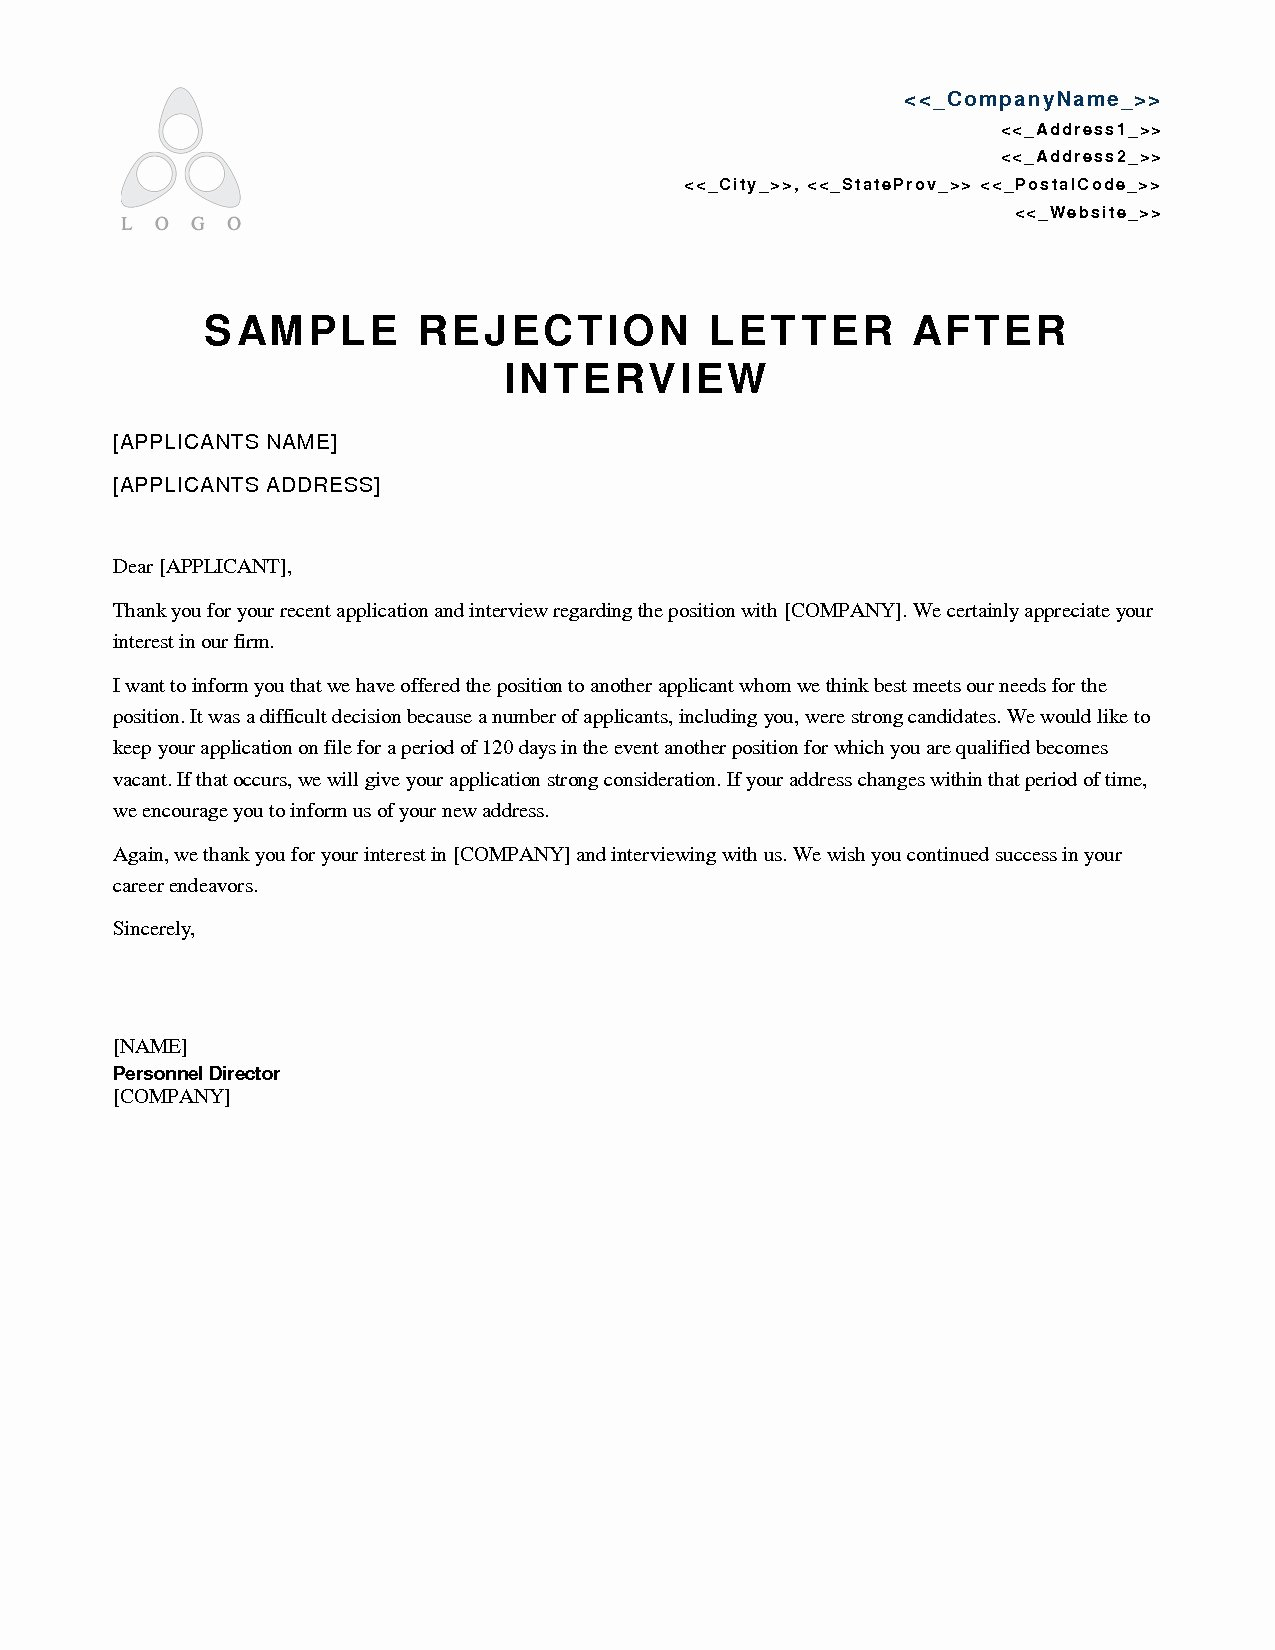 Job Rejection Email Template Lovely Rejection Letter Template after Interview Collection